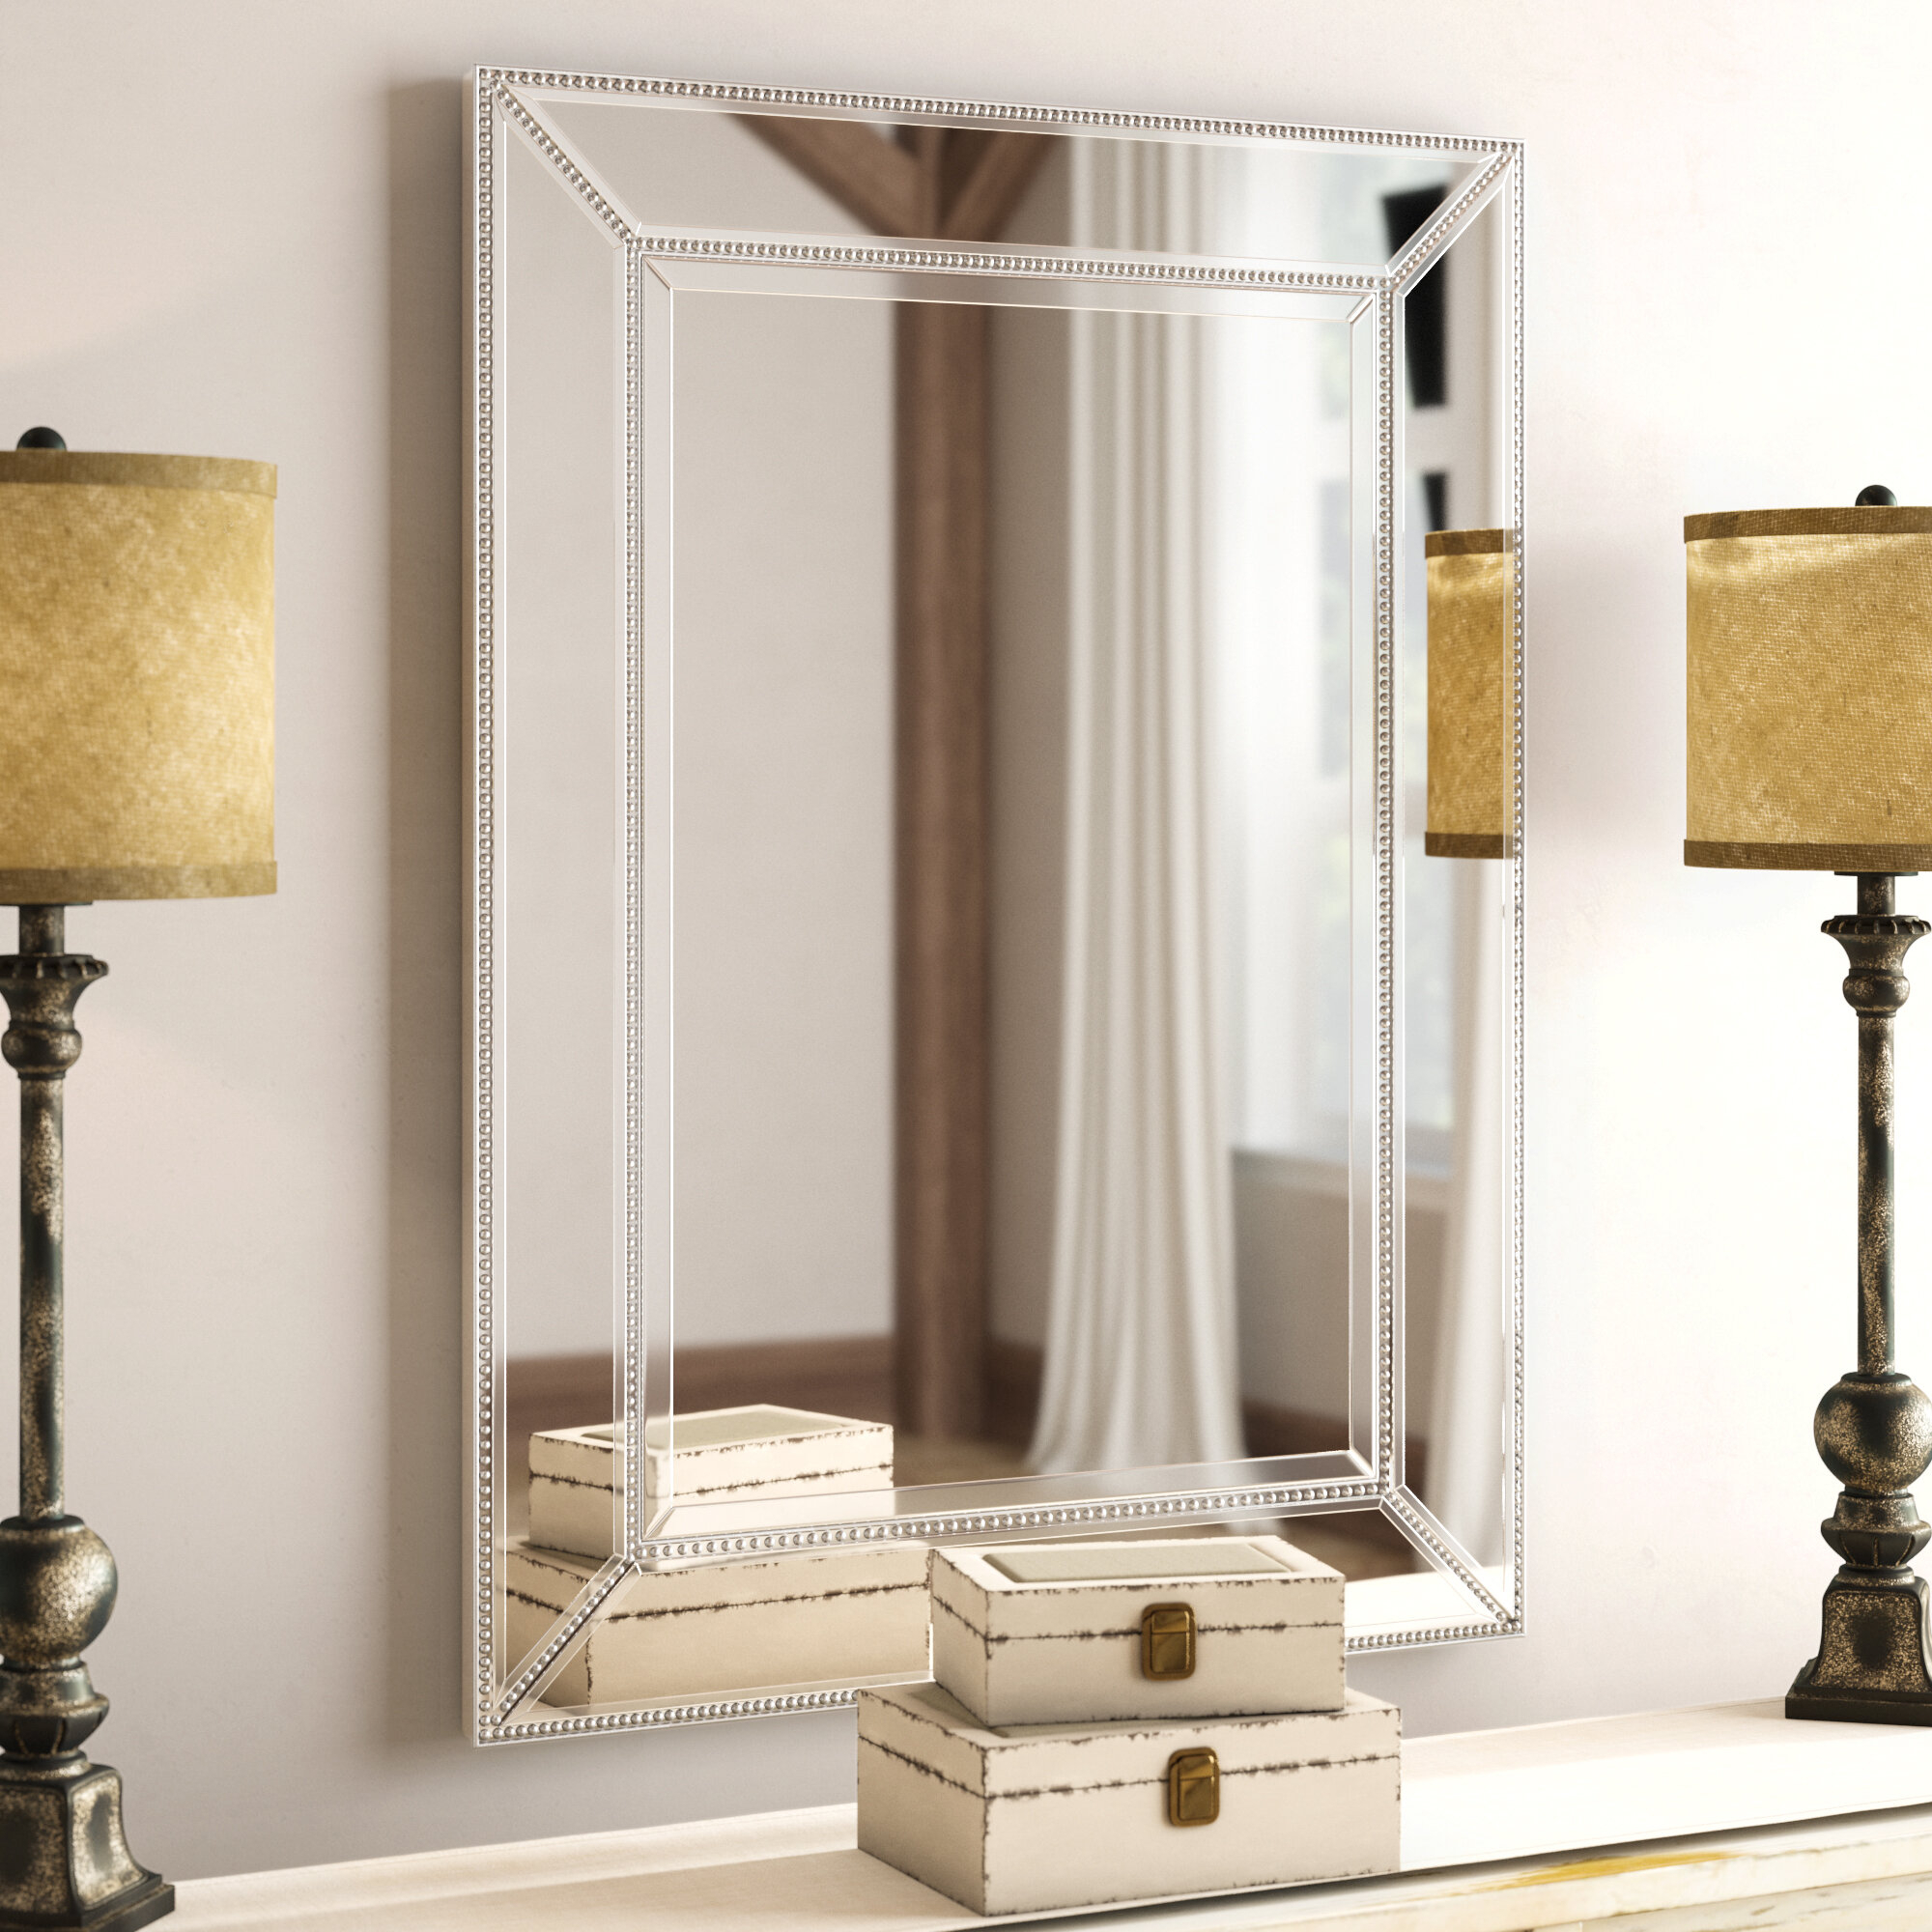 Brayden Beaded Accent Wall Mirror For Beaded Accent Wall Mirrors (View 7 of 30)